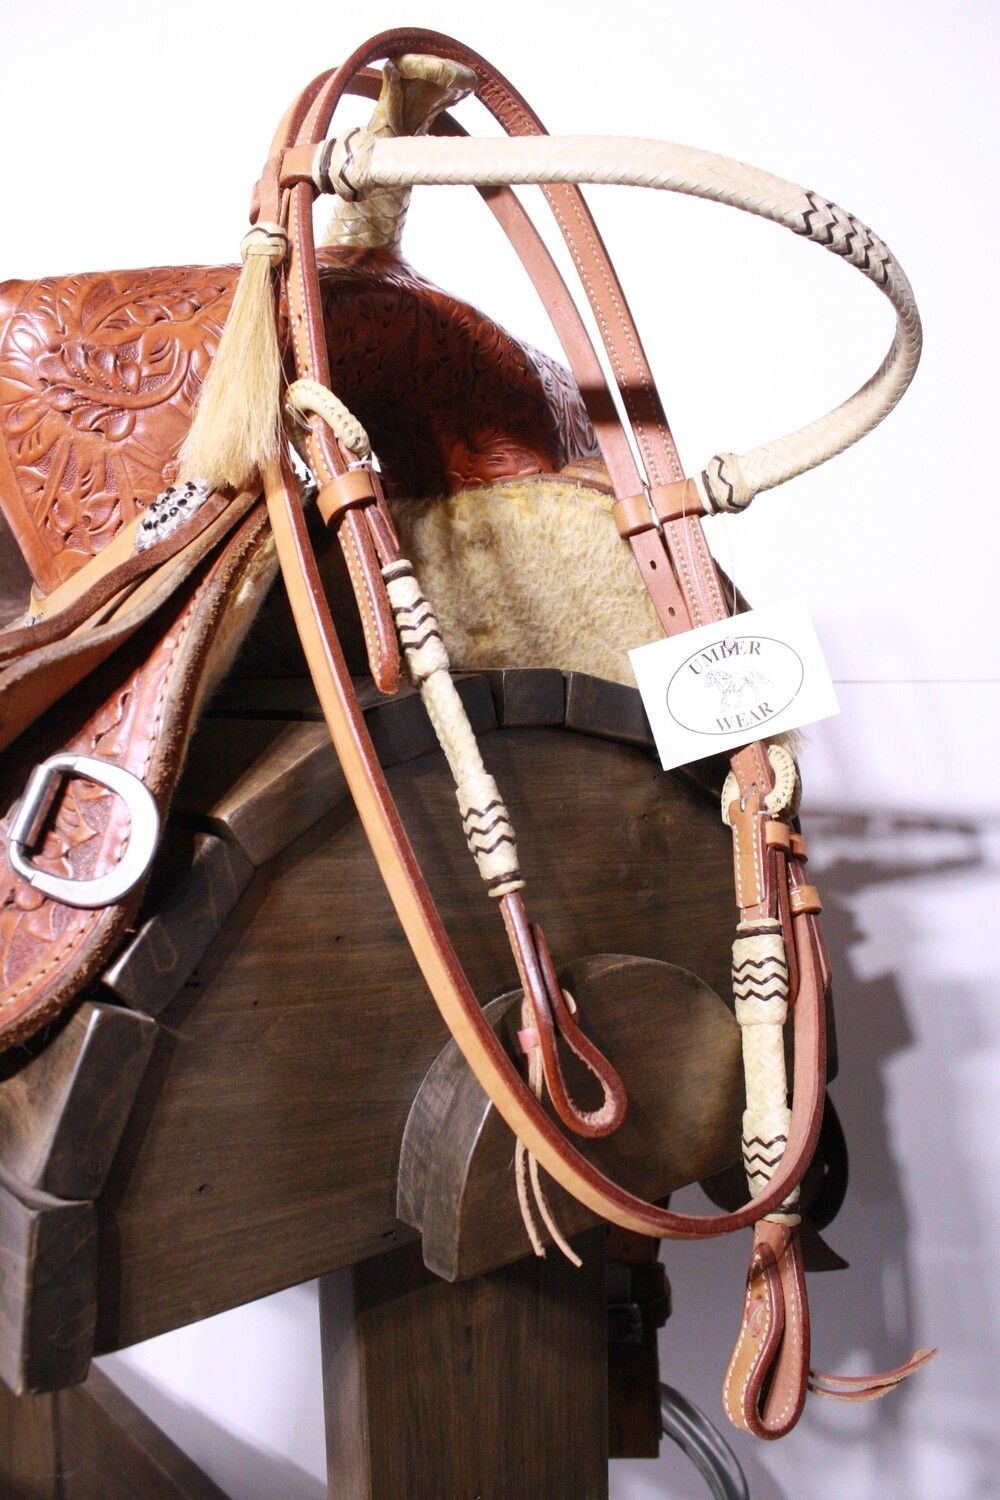 Umber Tack HS Light Browband with Horse Hair and Rawhide/Ties